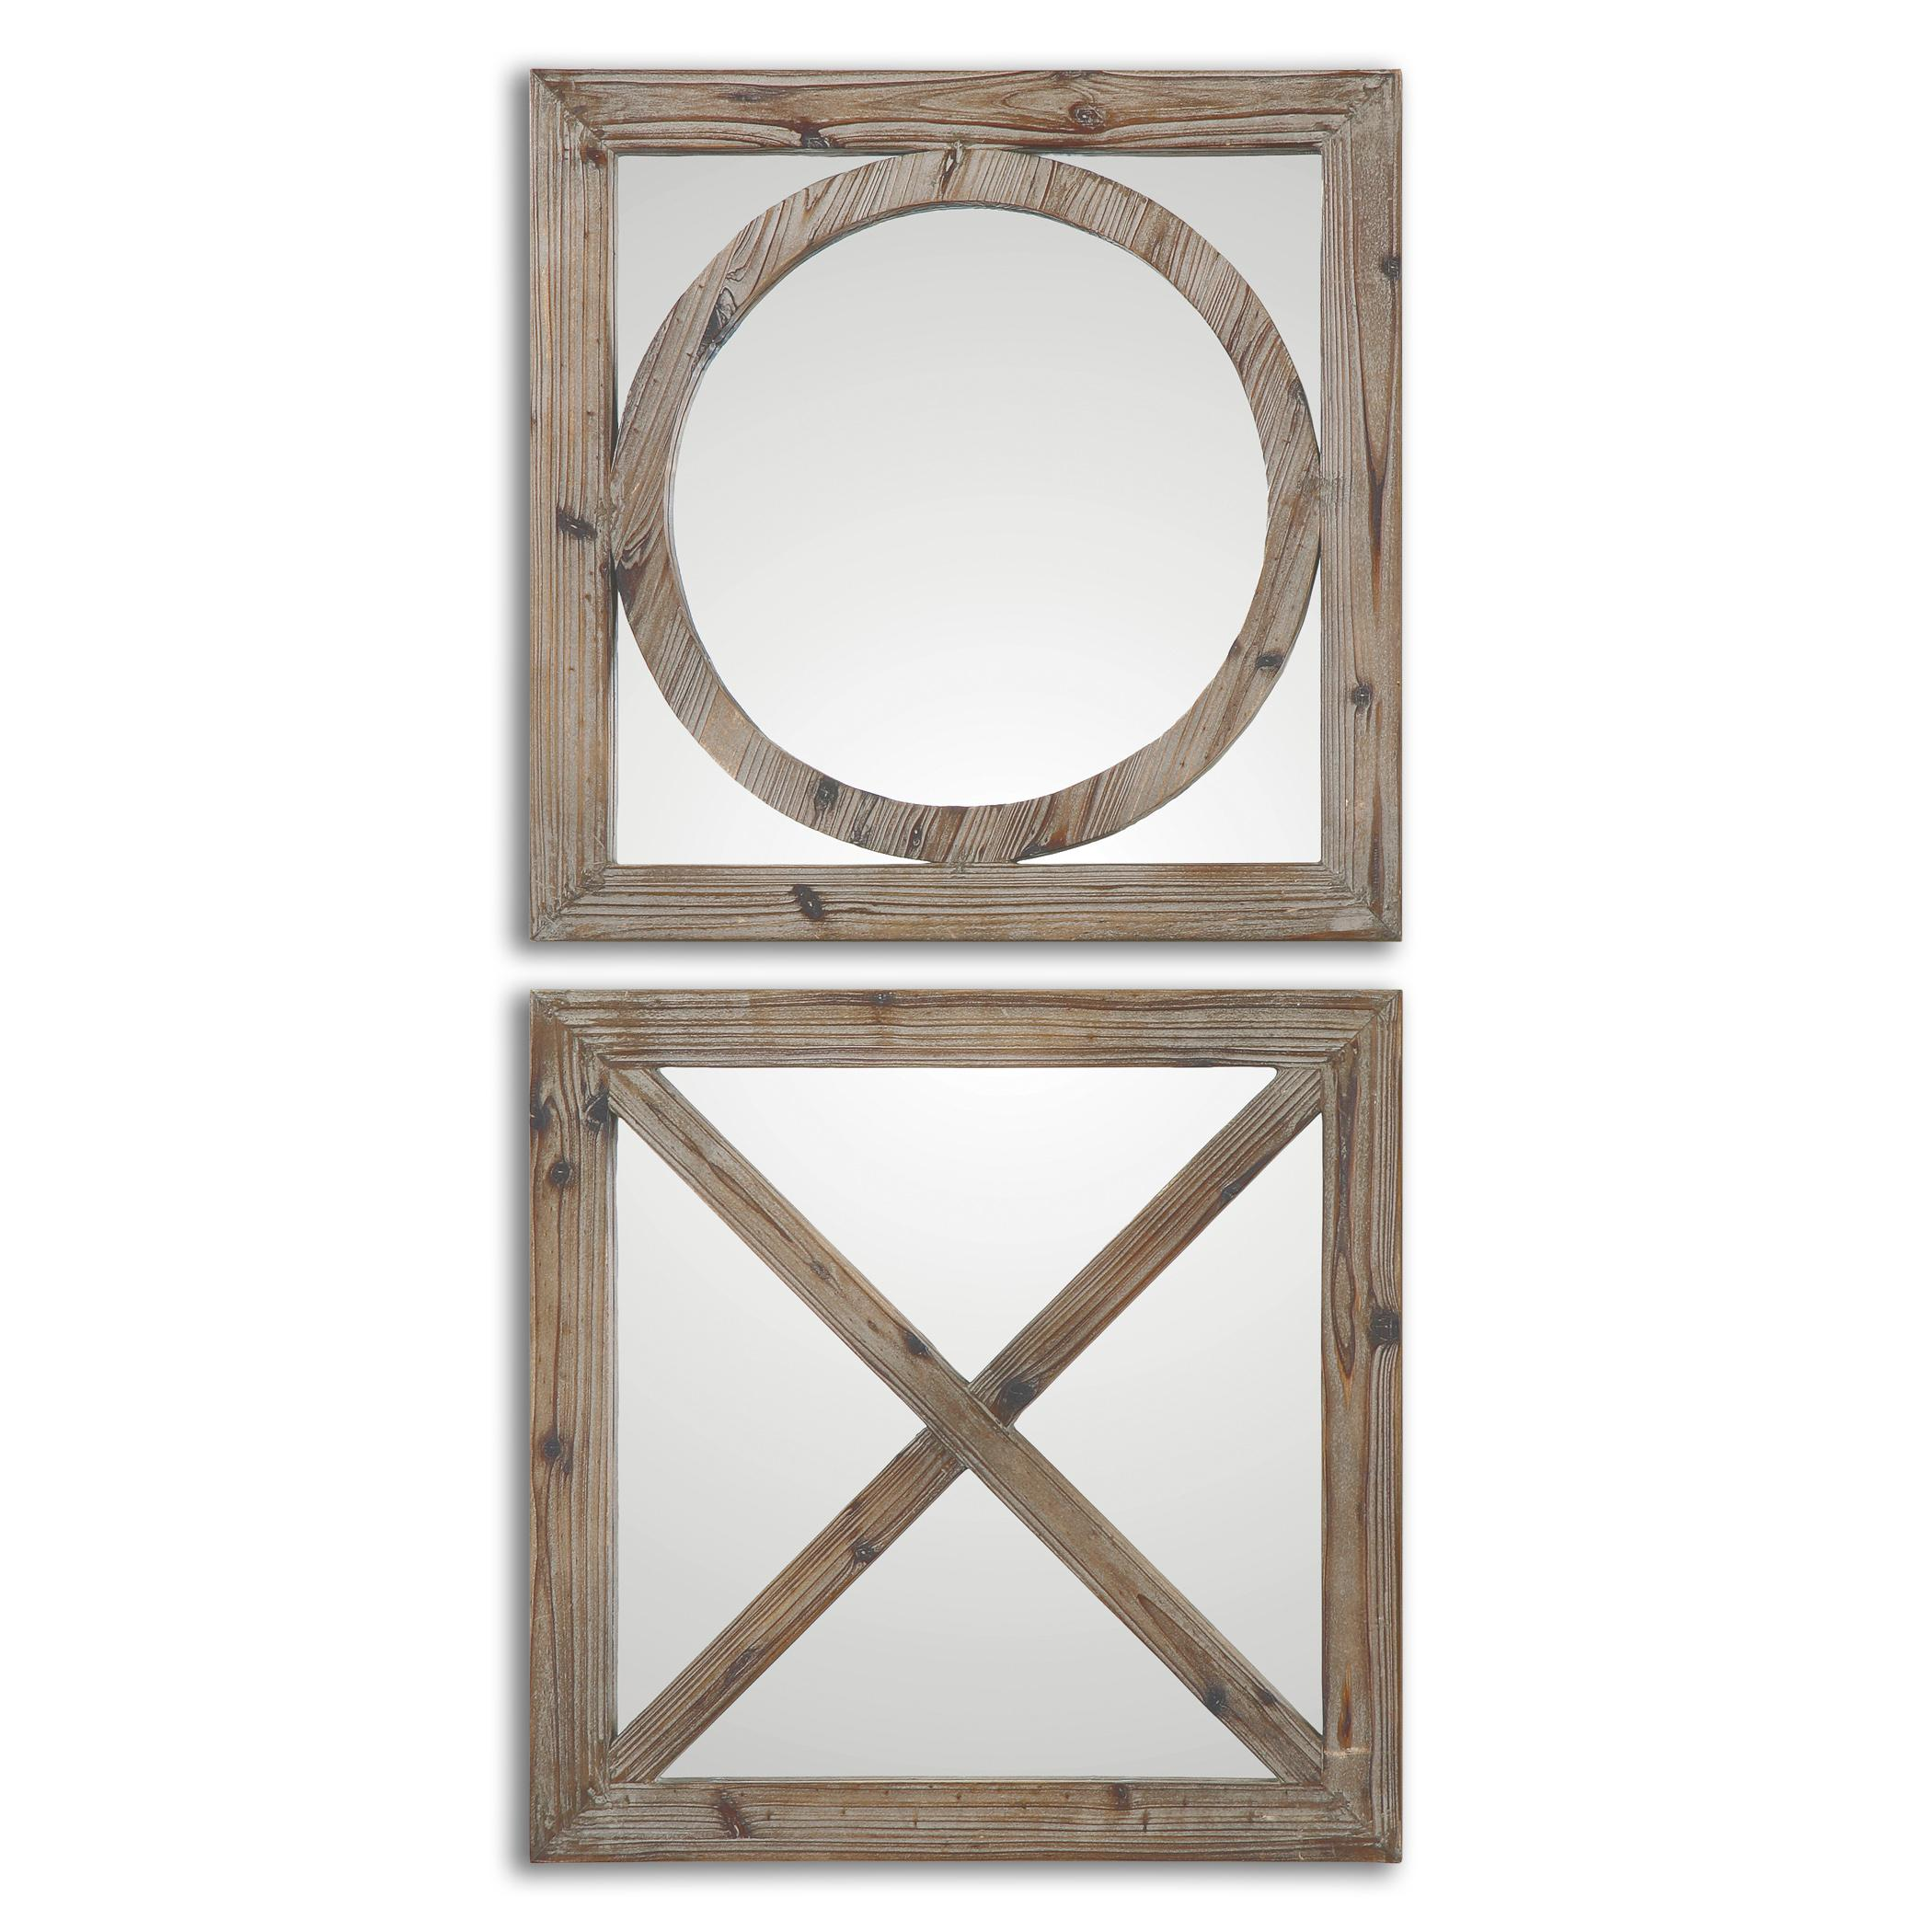 Uttermost Mirrors Baci E abbracci, Wooden Mirrors Set of 2 - Item Number: 07067